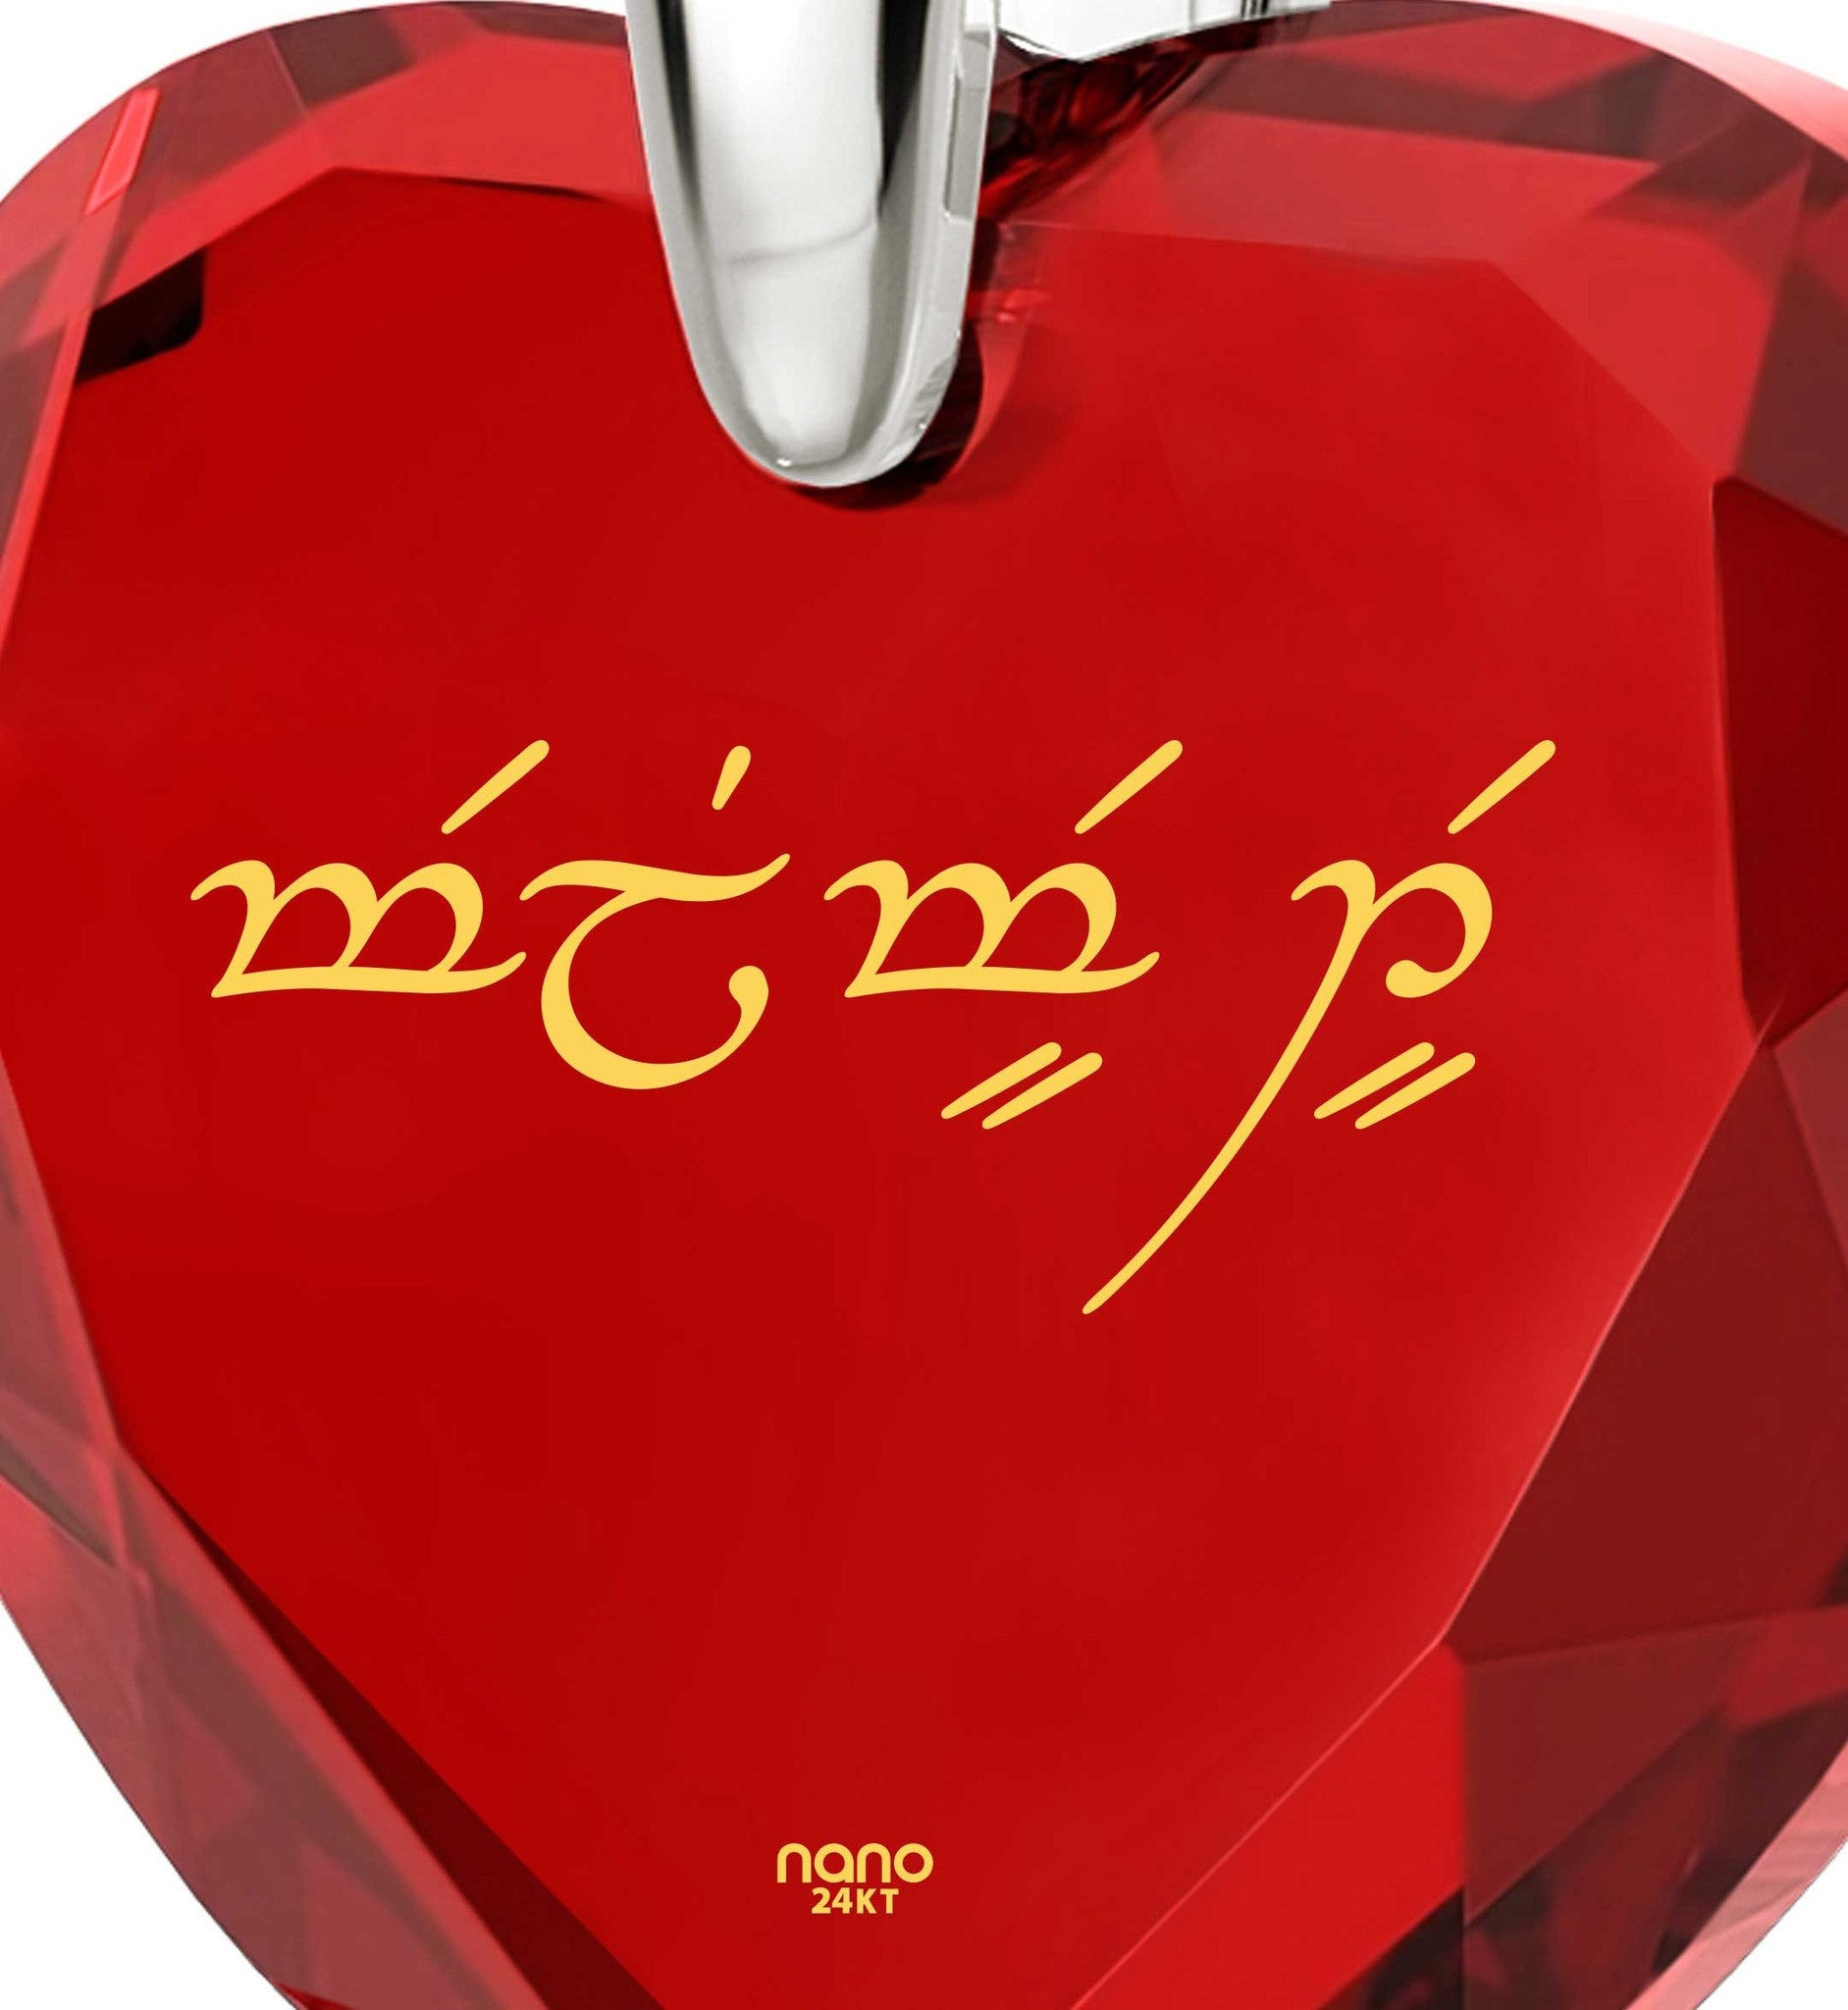 "Good Gifts for Girlfriend,""I Love You"" in Elvish, Gold Filled Chain,Womens Presents, Nano Jewelry"